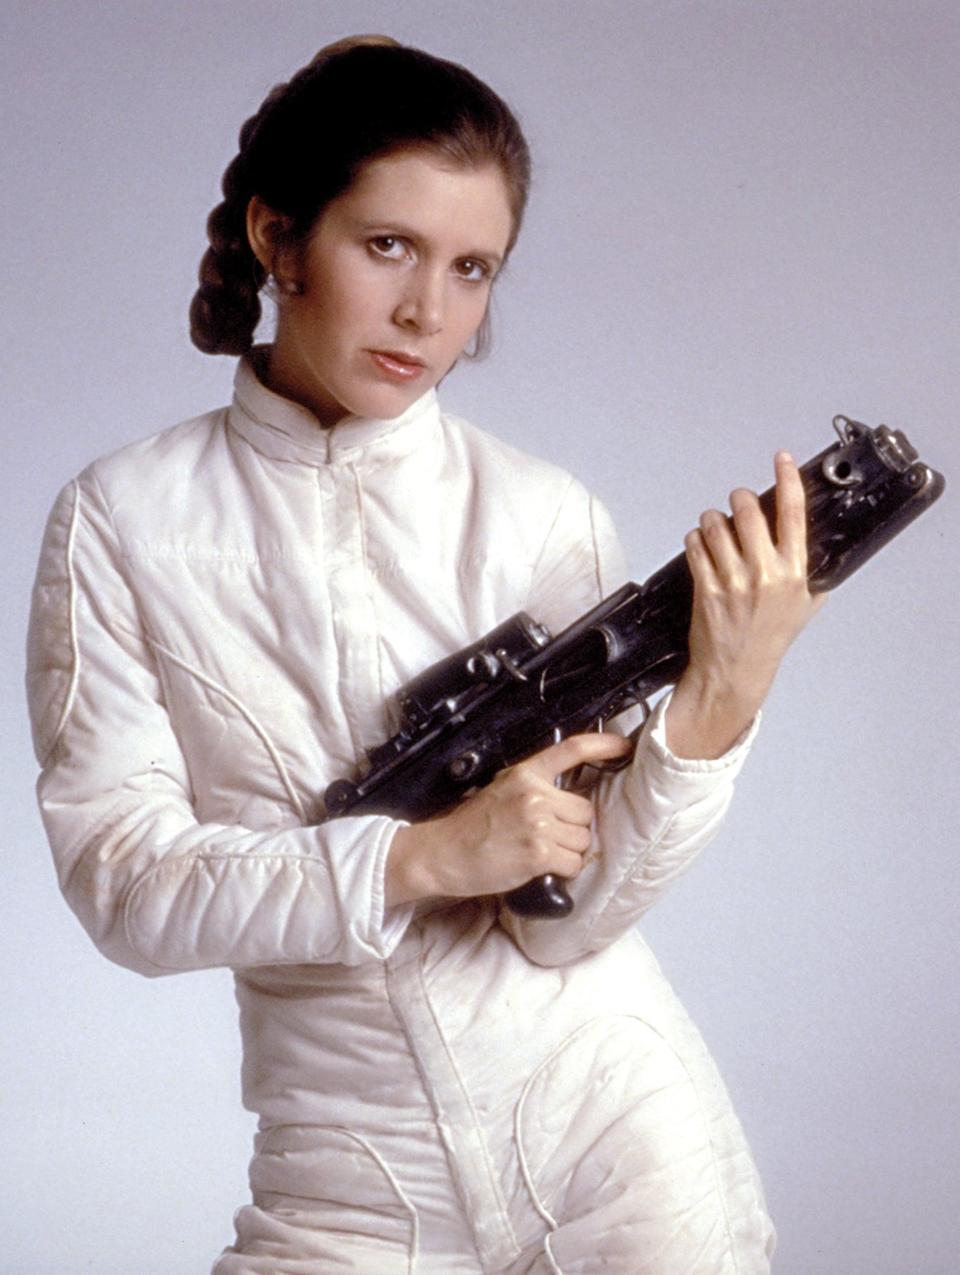 <ul> <li><strong>What to wear:</strong> A white jumpsuit, padding and faux blaster optional, with dark blue boots. Pull your hair back in a single braid.</li> </ul>